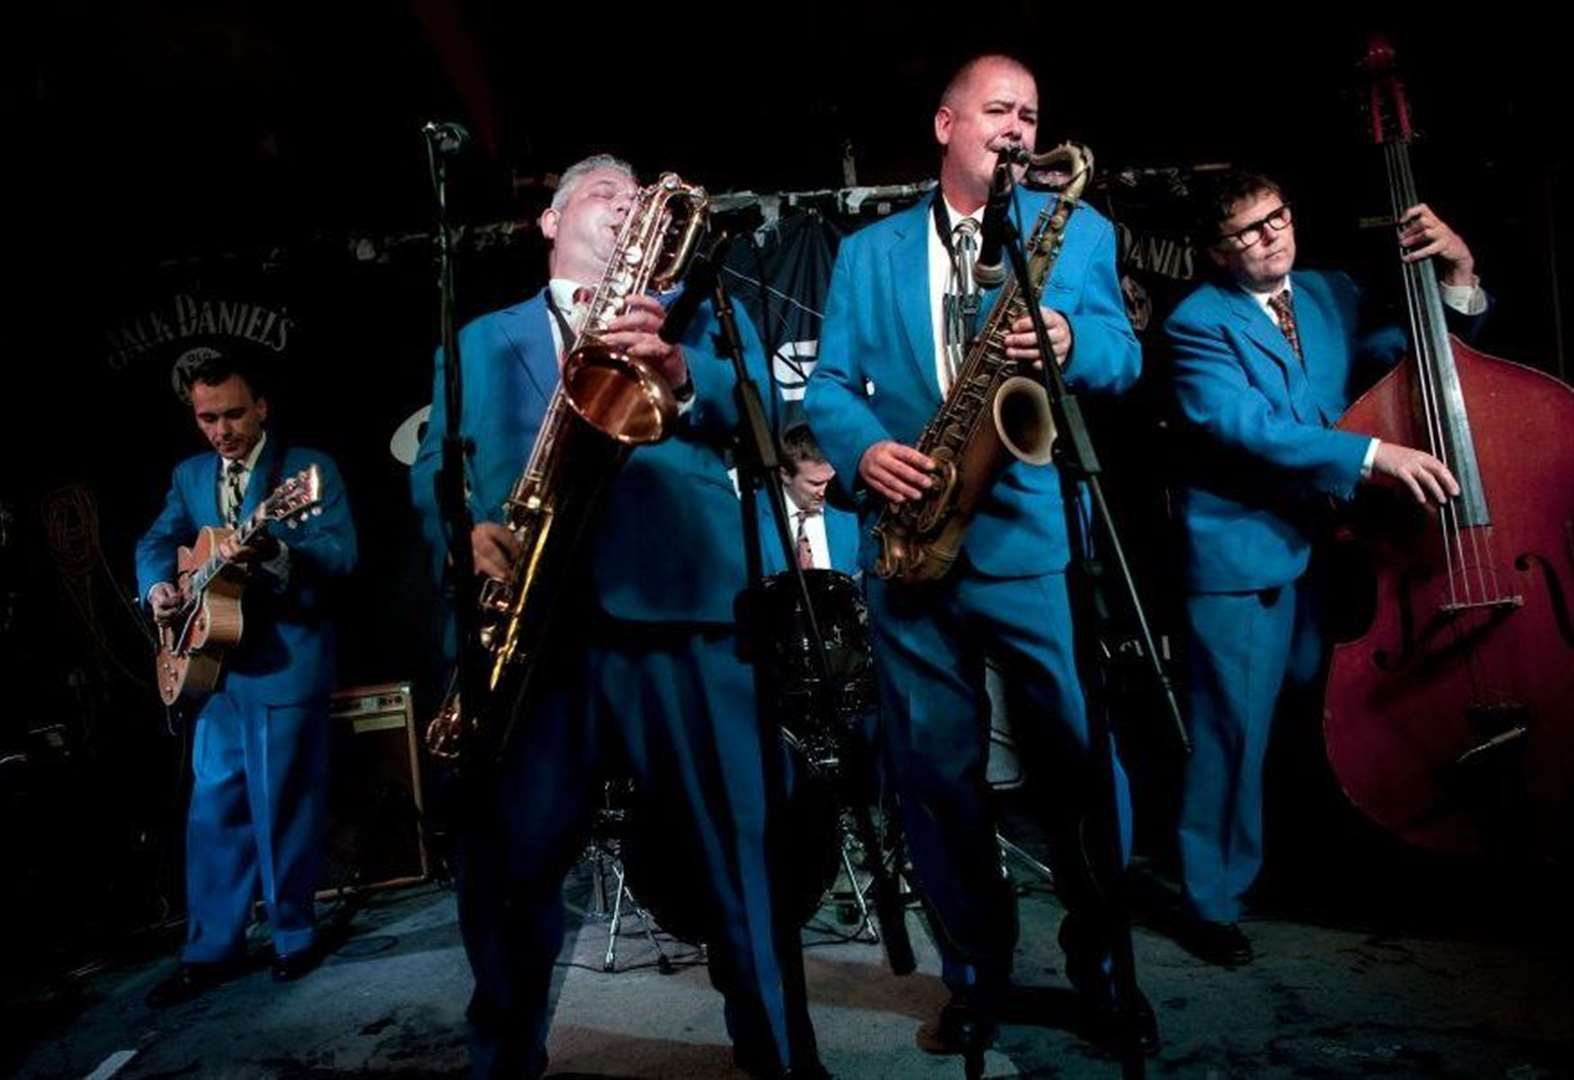 Prepare to be blown away by this amazing jump, jive and swing band